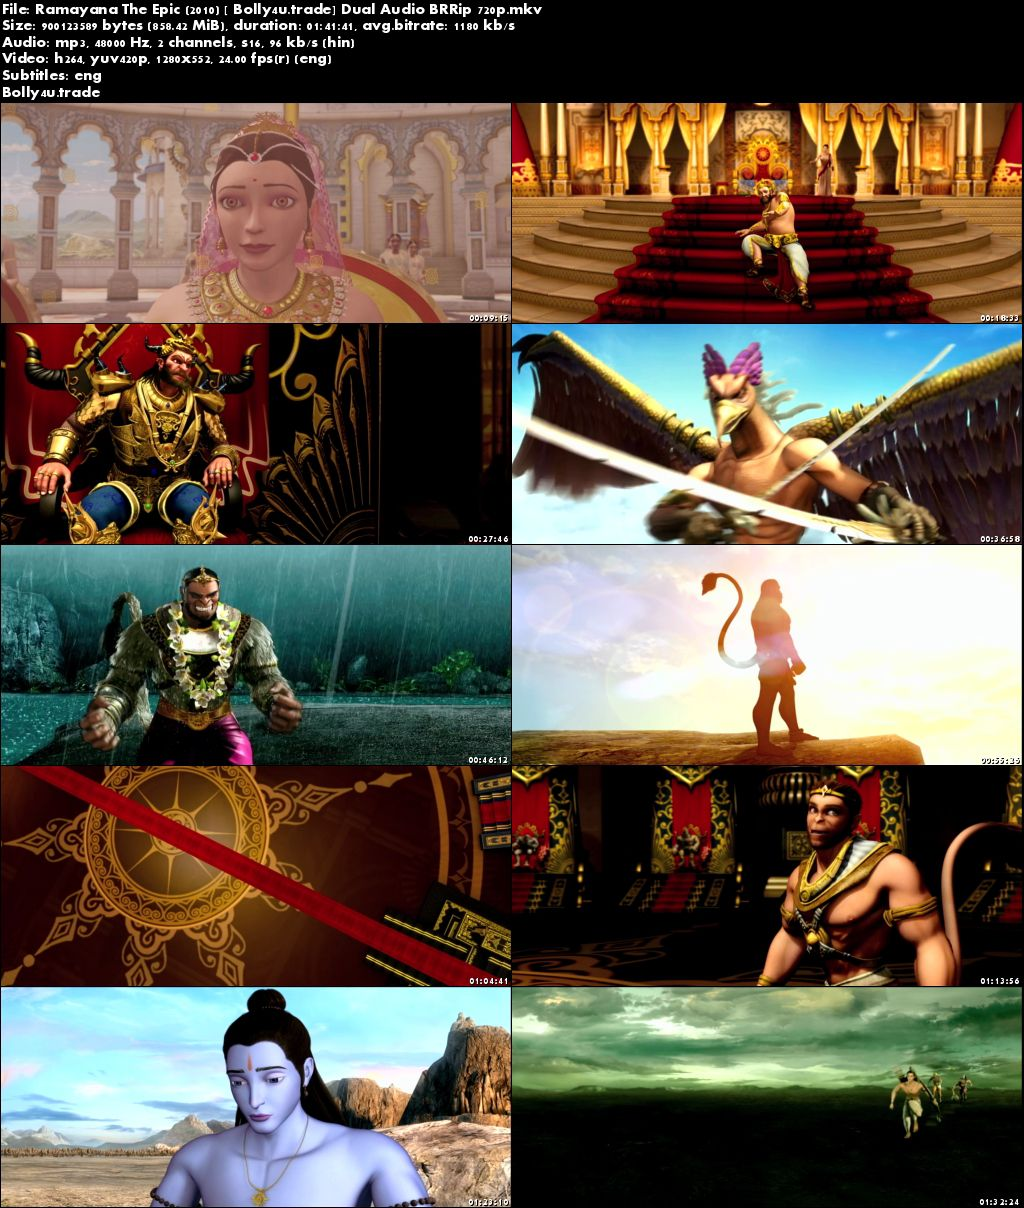 Ramayana The Epic 2010 BluRay 850MB Hindi 720p Download